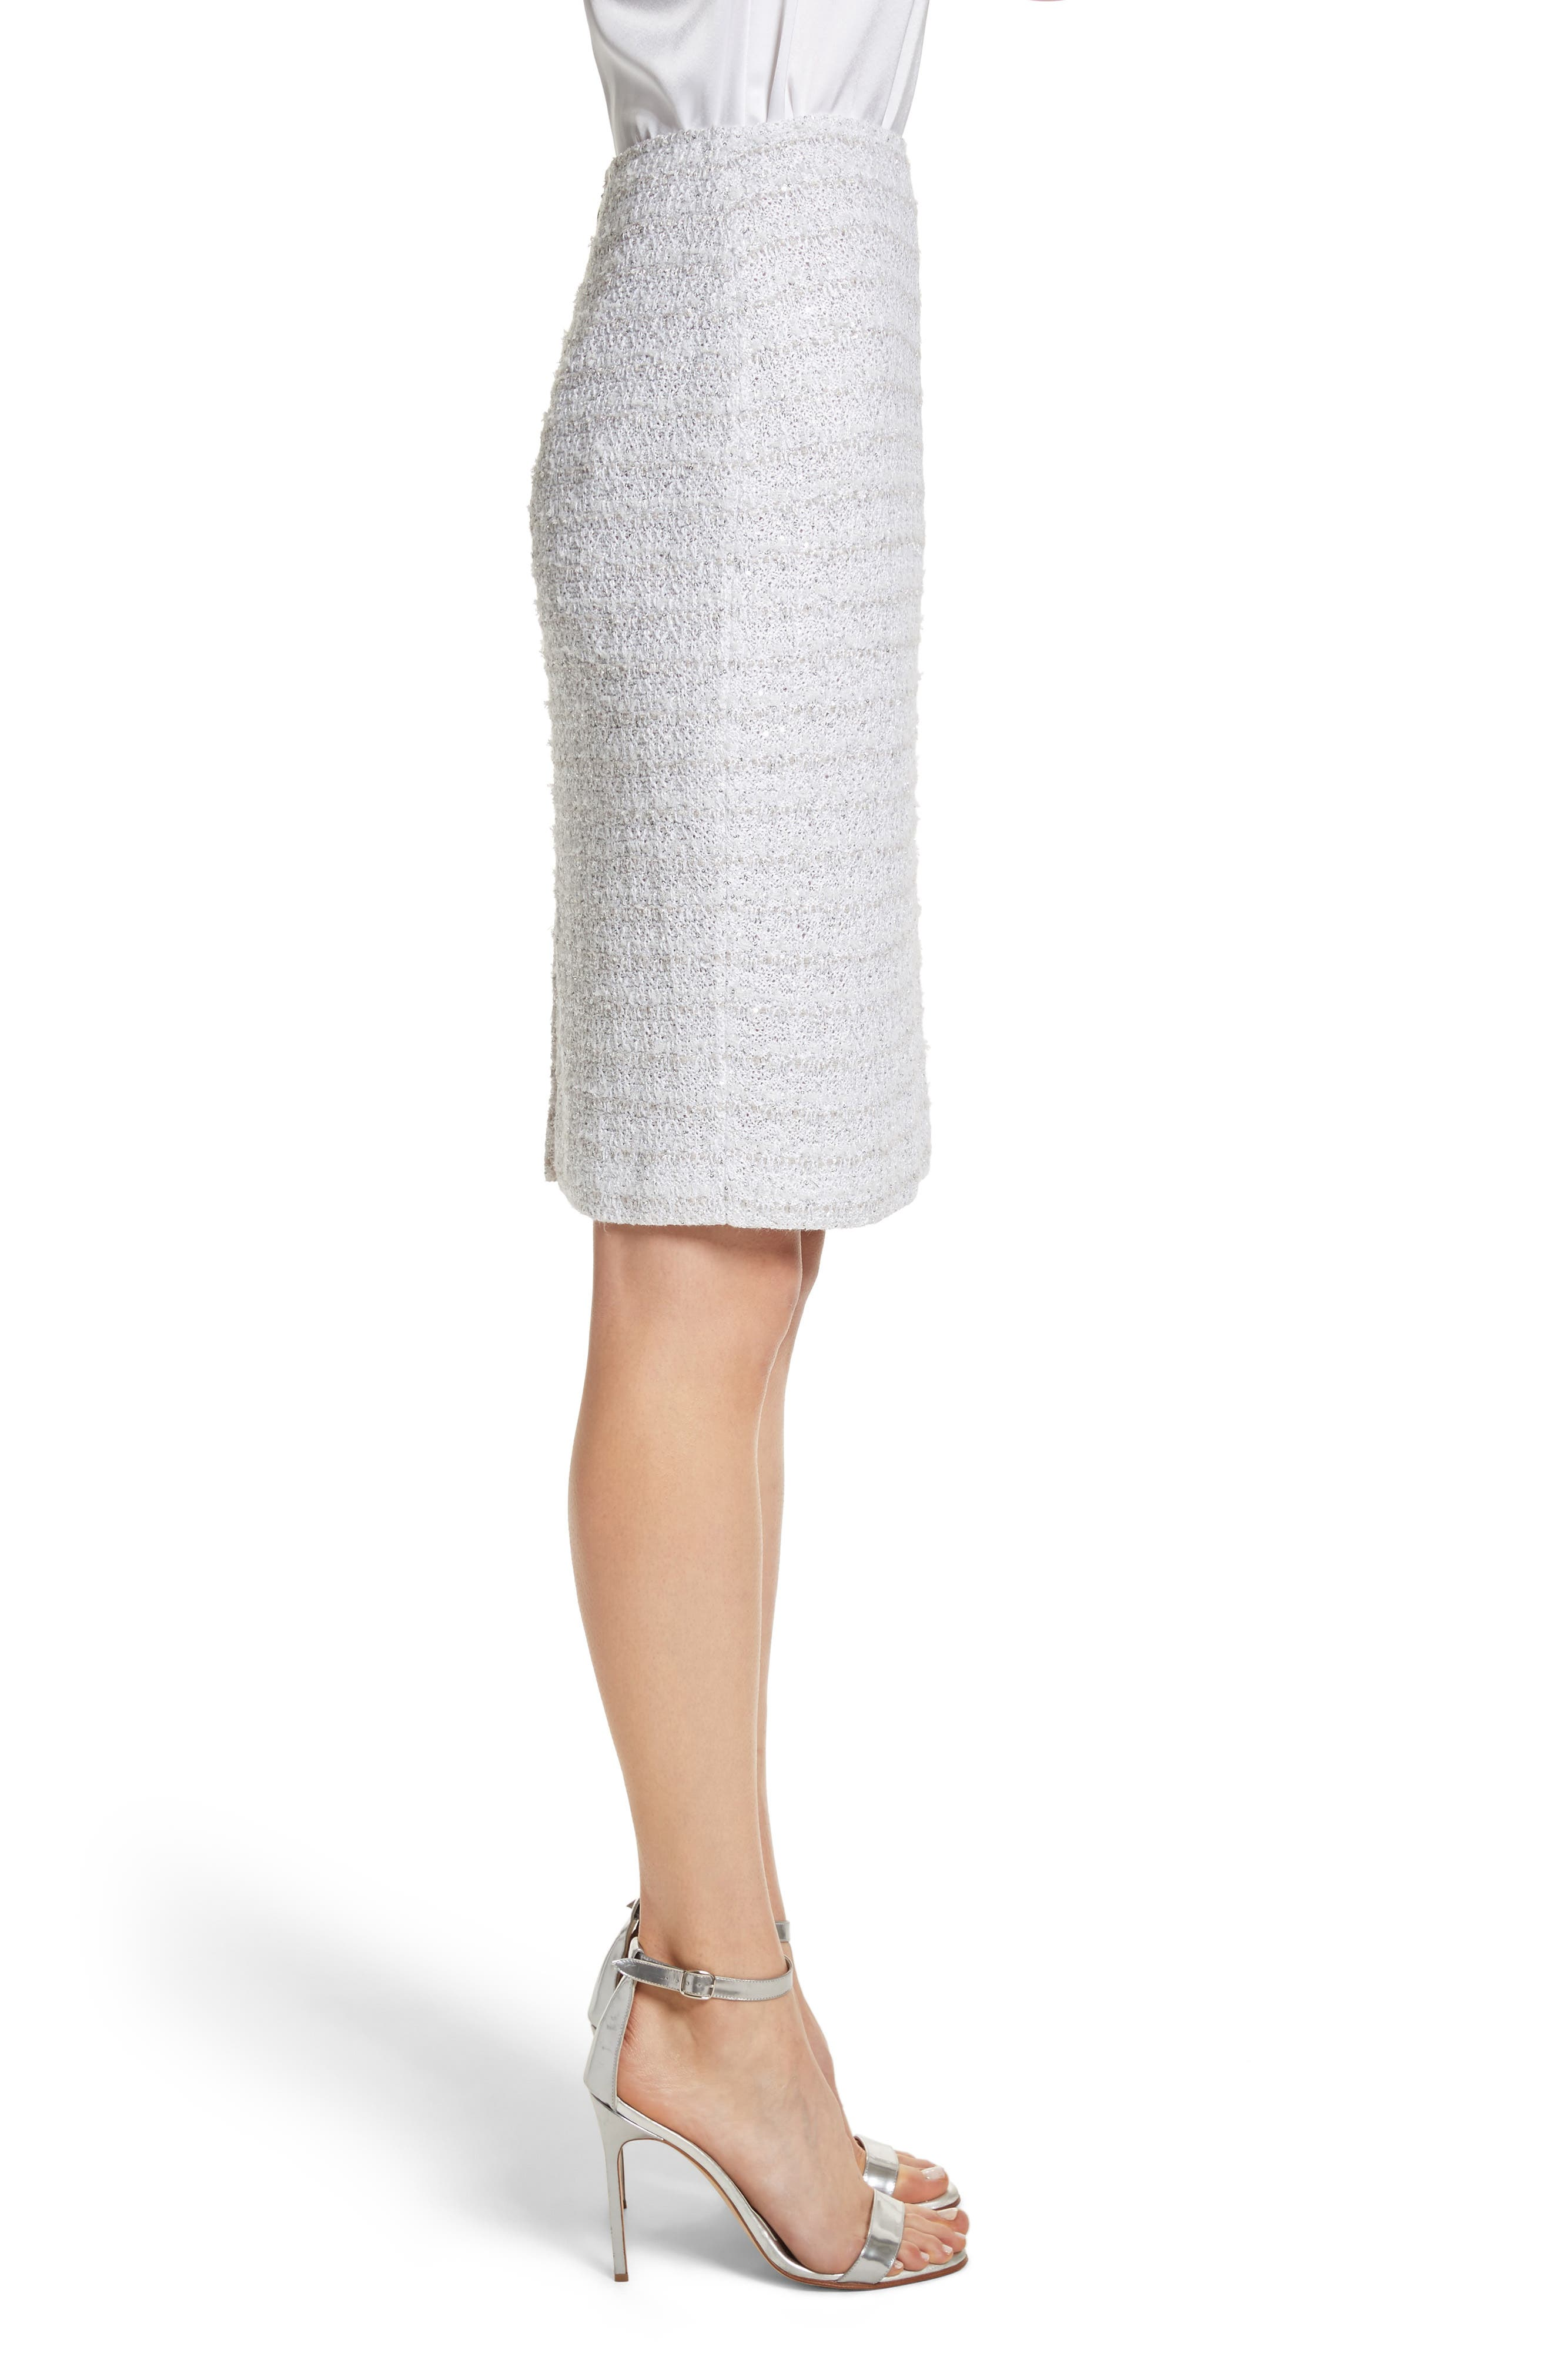 Frosted Metallic Tweed Pencil Skirt,                             Alternate thumbnail 3, color,                             Bianco Multi